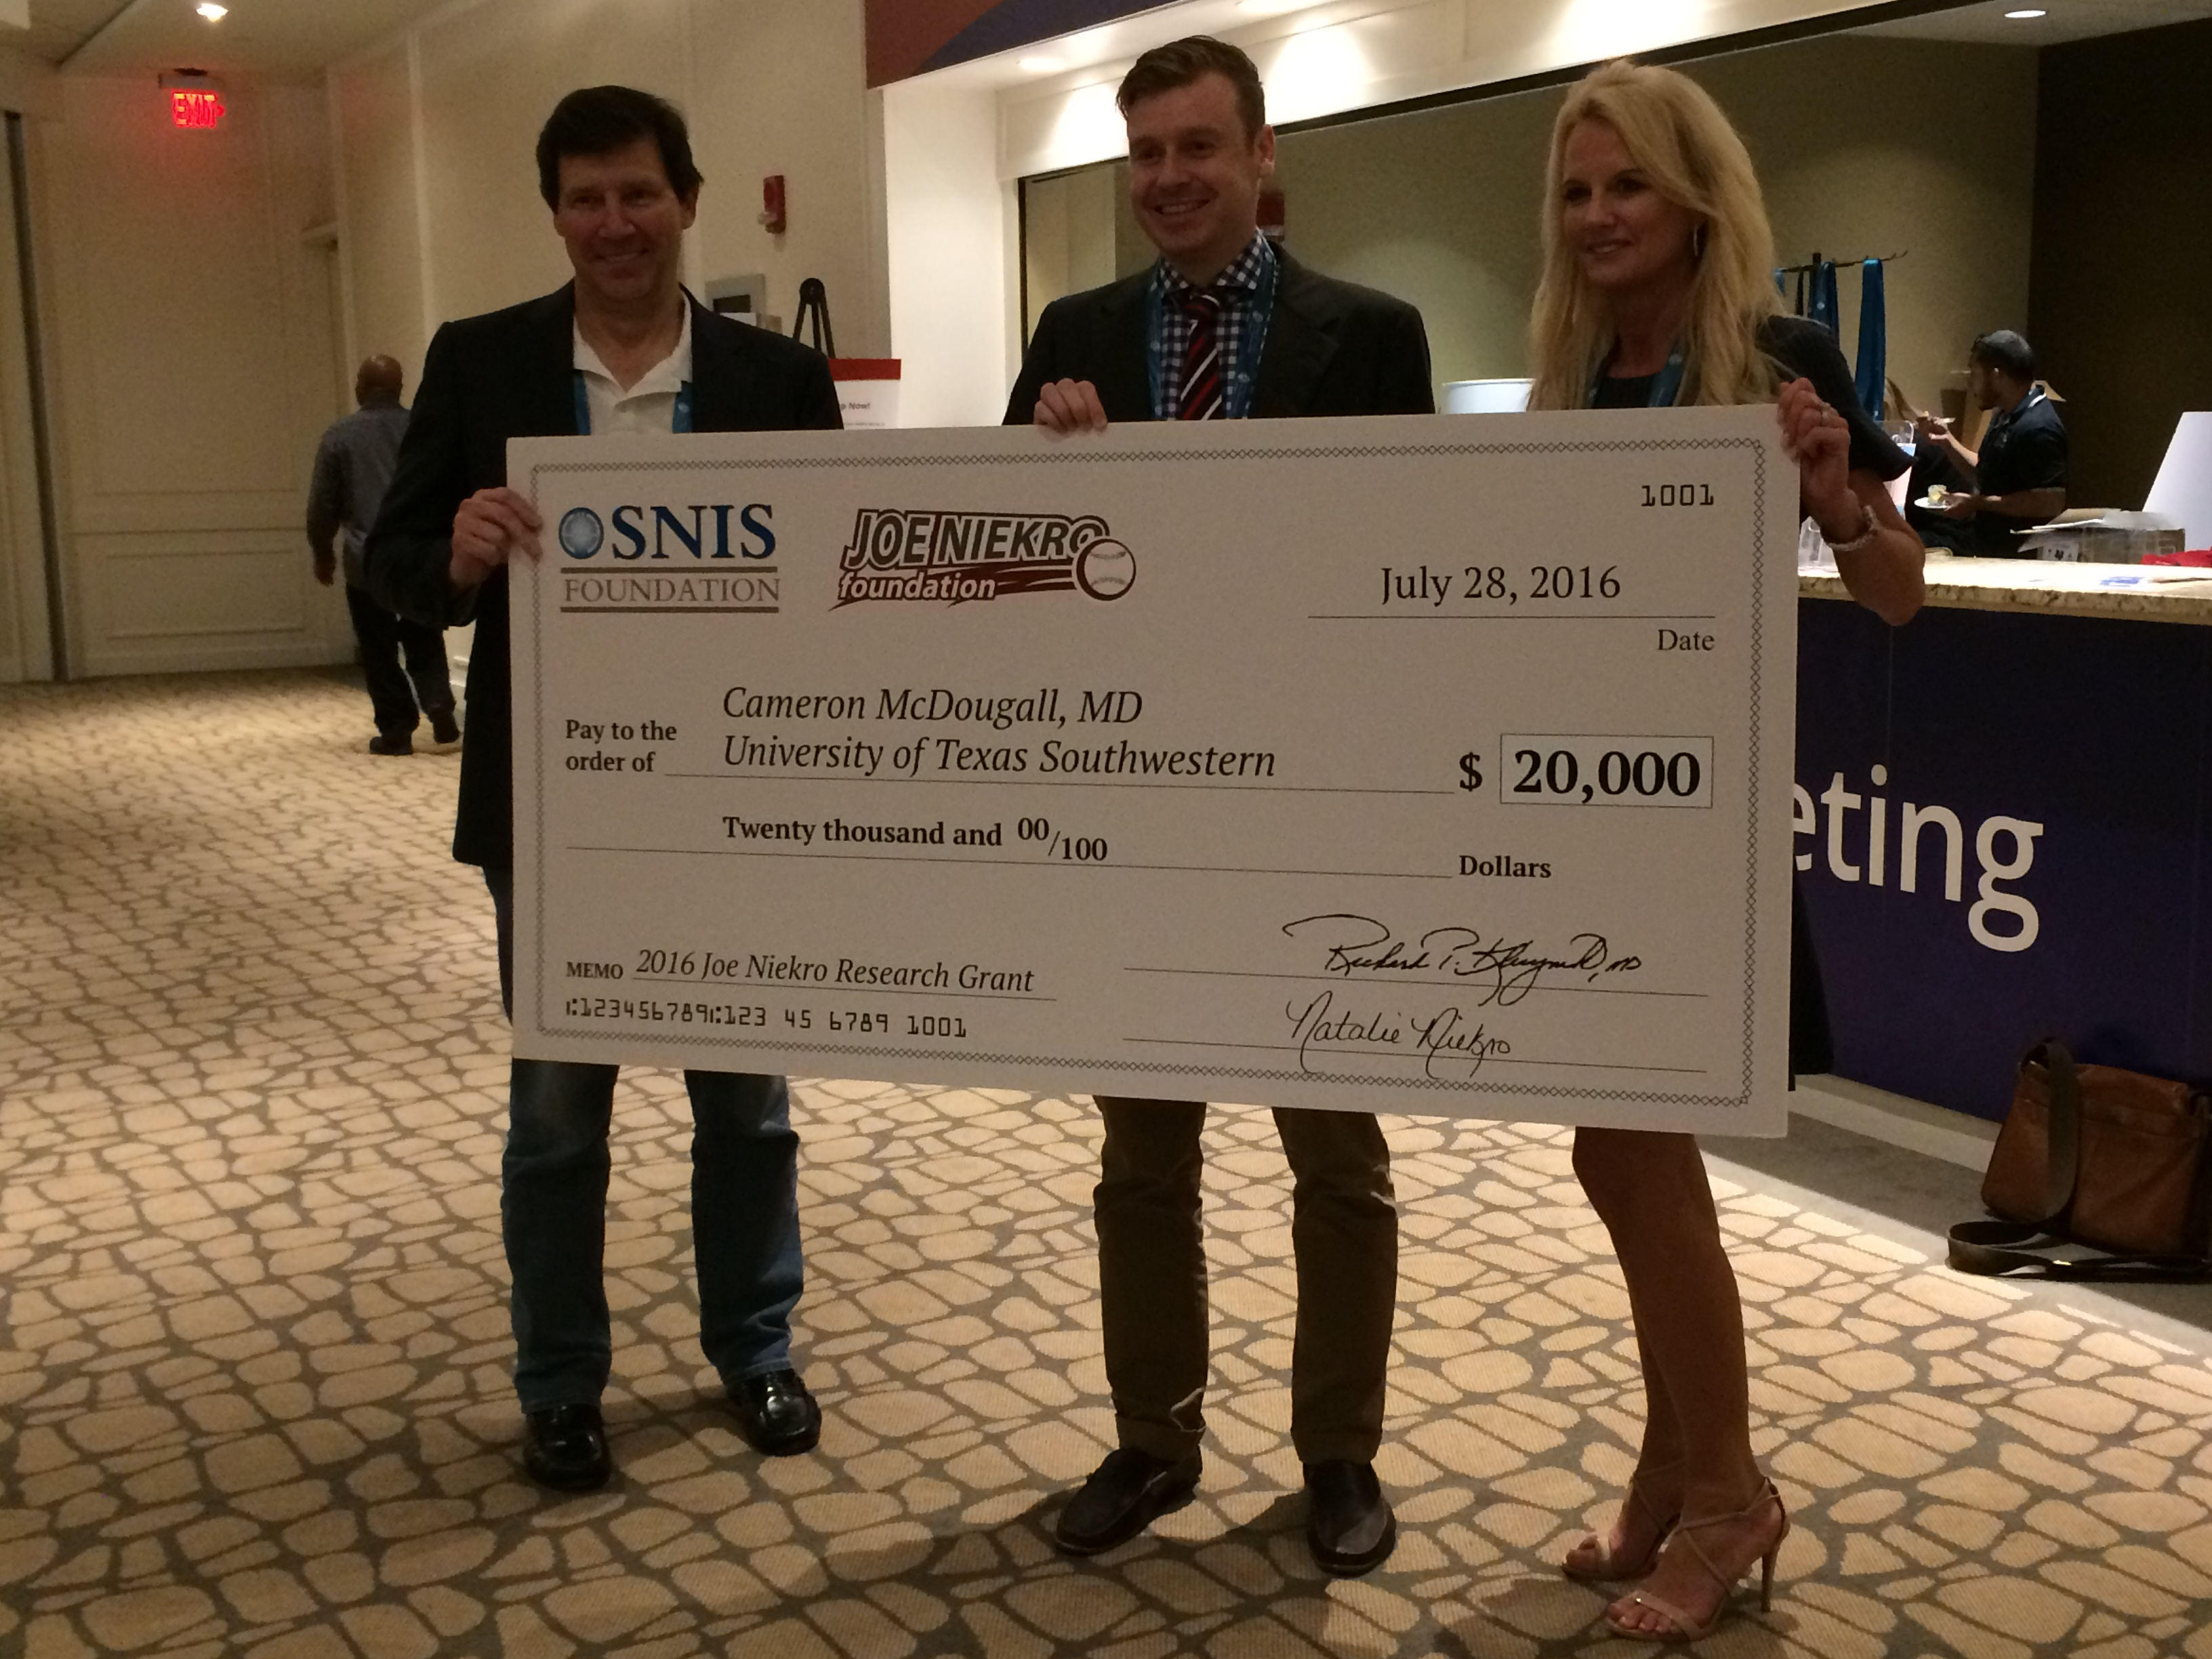 http://www.joeniekrofoundation.com/aneurysms/jnf-awards-three-seed-grants-at-2016-snis-annual-meeting/attachment/img_1052/